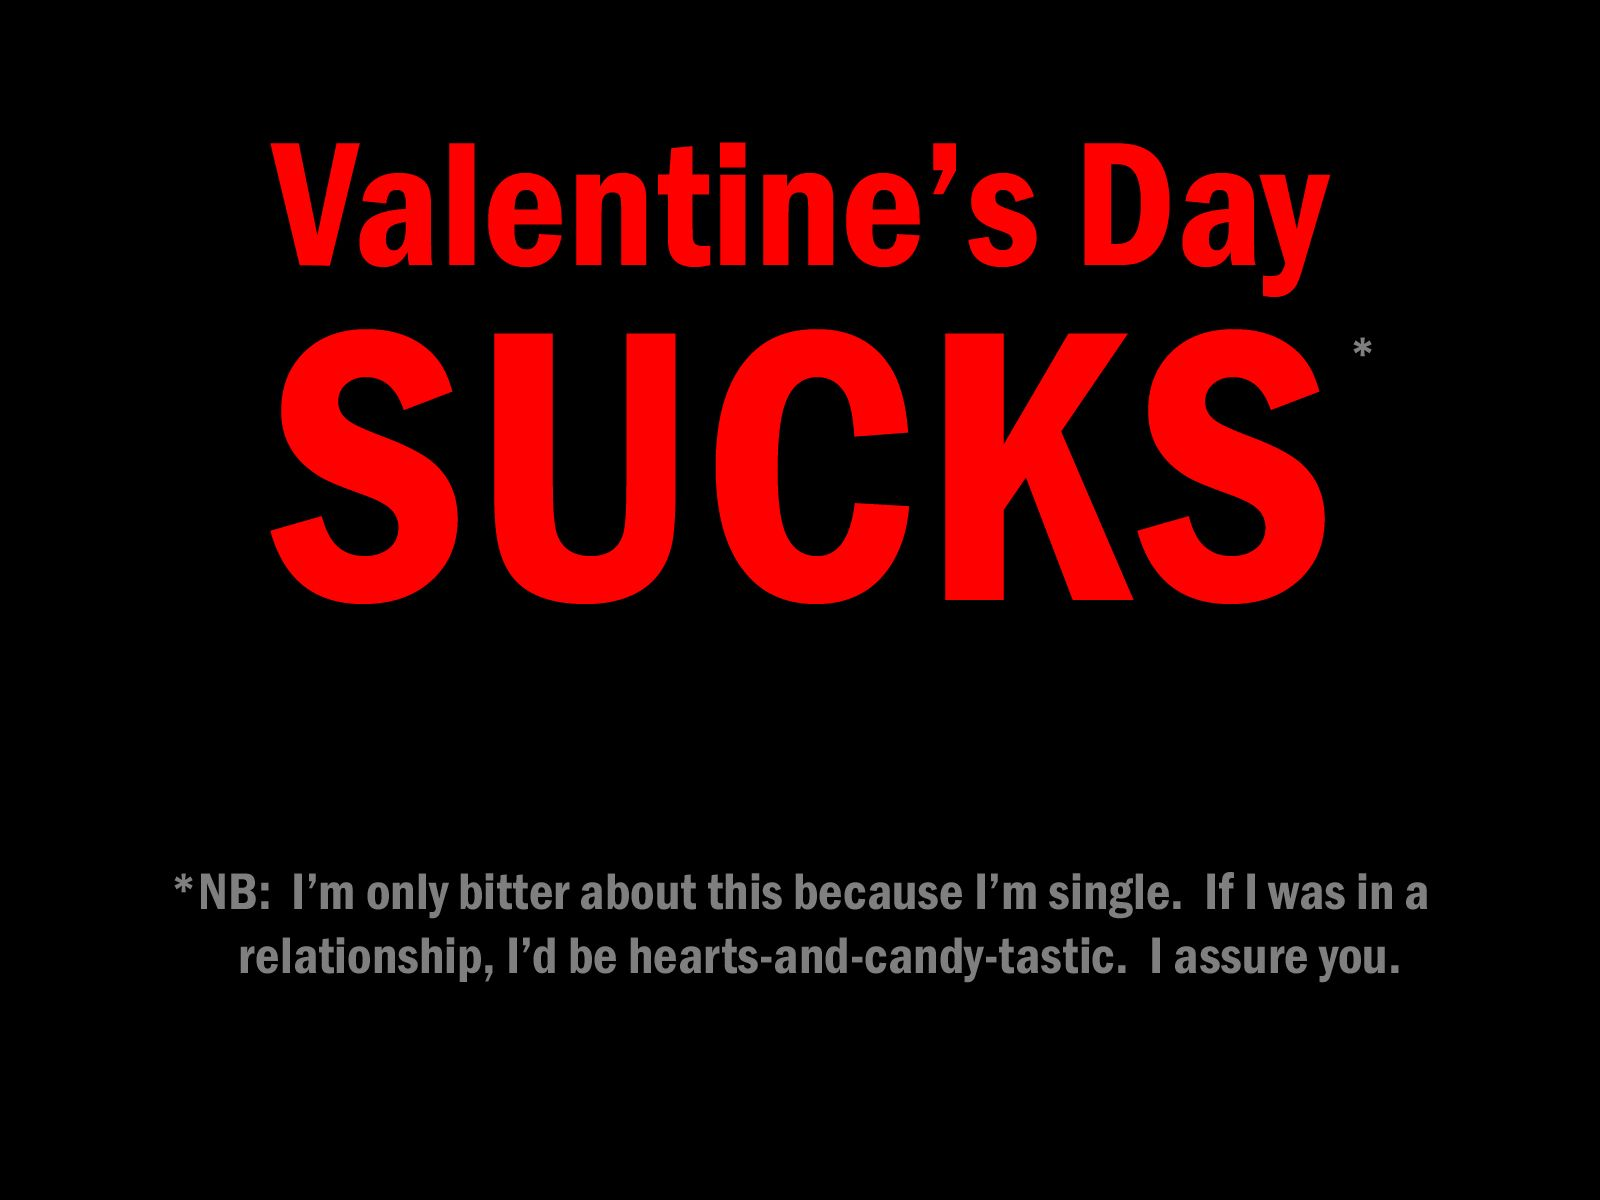 funny valentines day images. hilarious valentines day quotes ...